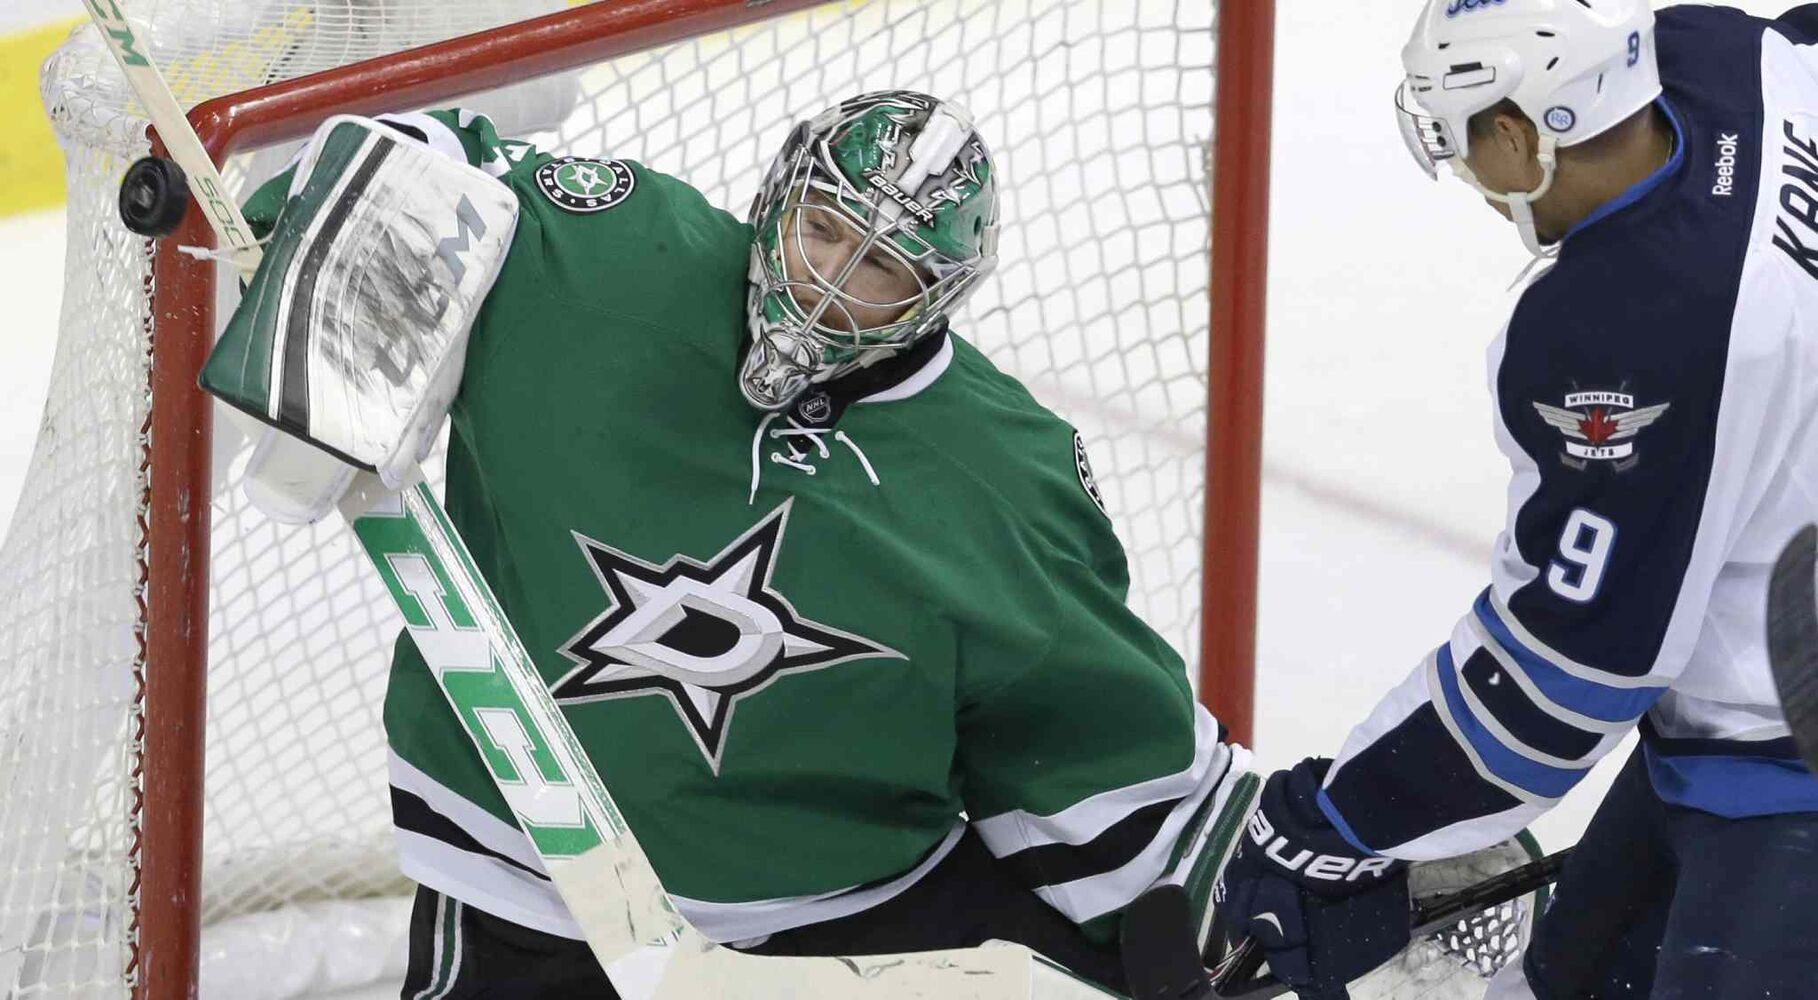 Dallas Stars goalie Kari Lehtonen blocks a shot from Winnipeg Jets left-winger Evander Kane (9) during the second period of an NHL game at American Airlines Arena in Dallas Monday. The Jets lost 2-1. (L.M. OTERO / THE ASSOCIATED PRESS)